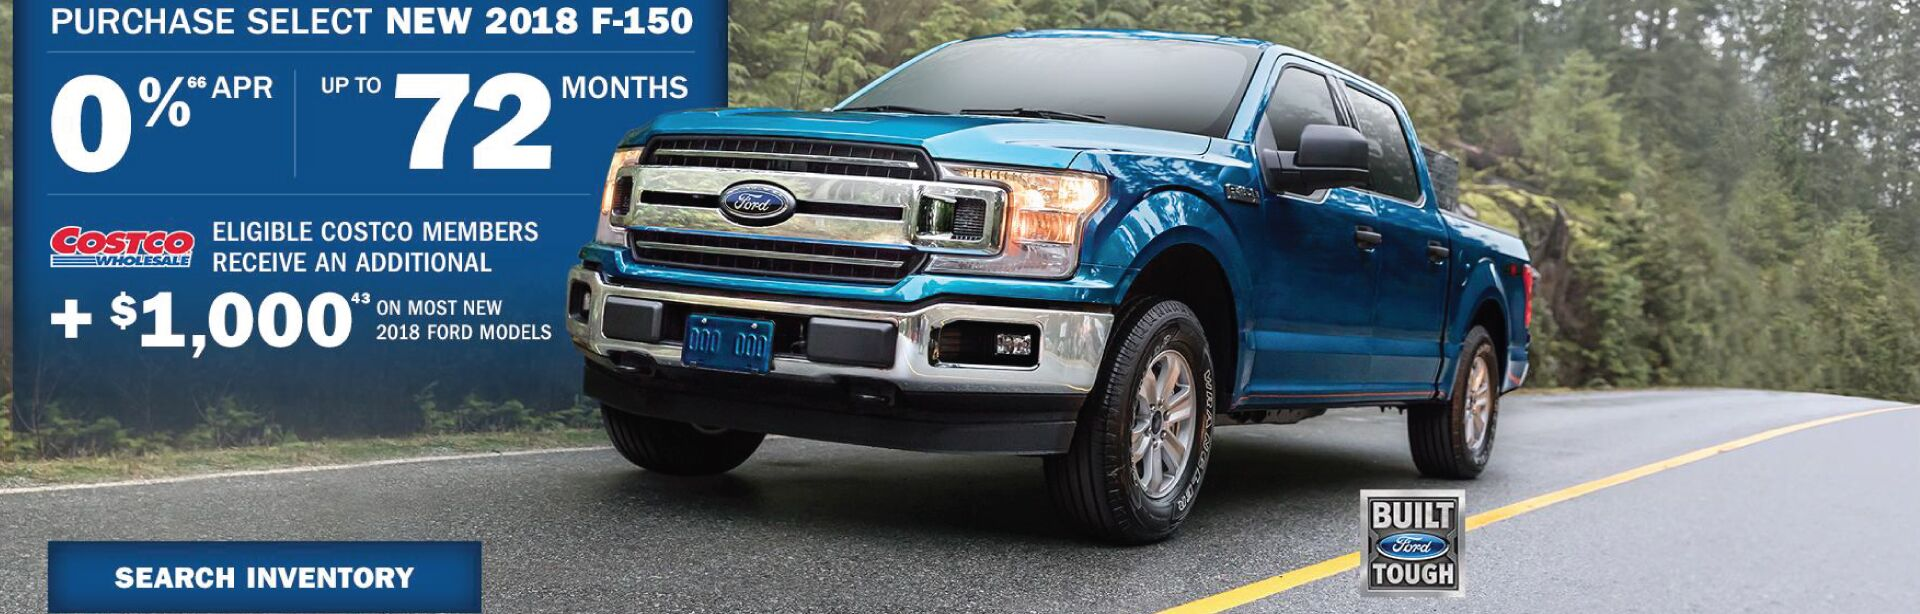 F-150 May Incentives